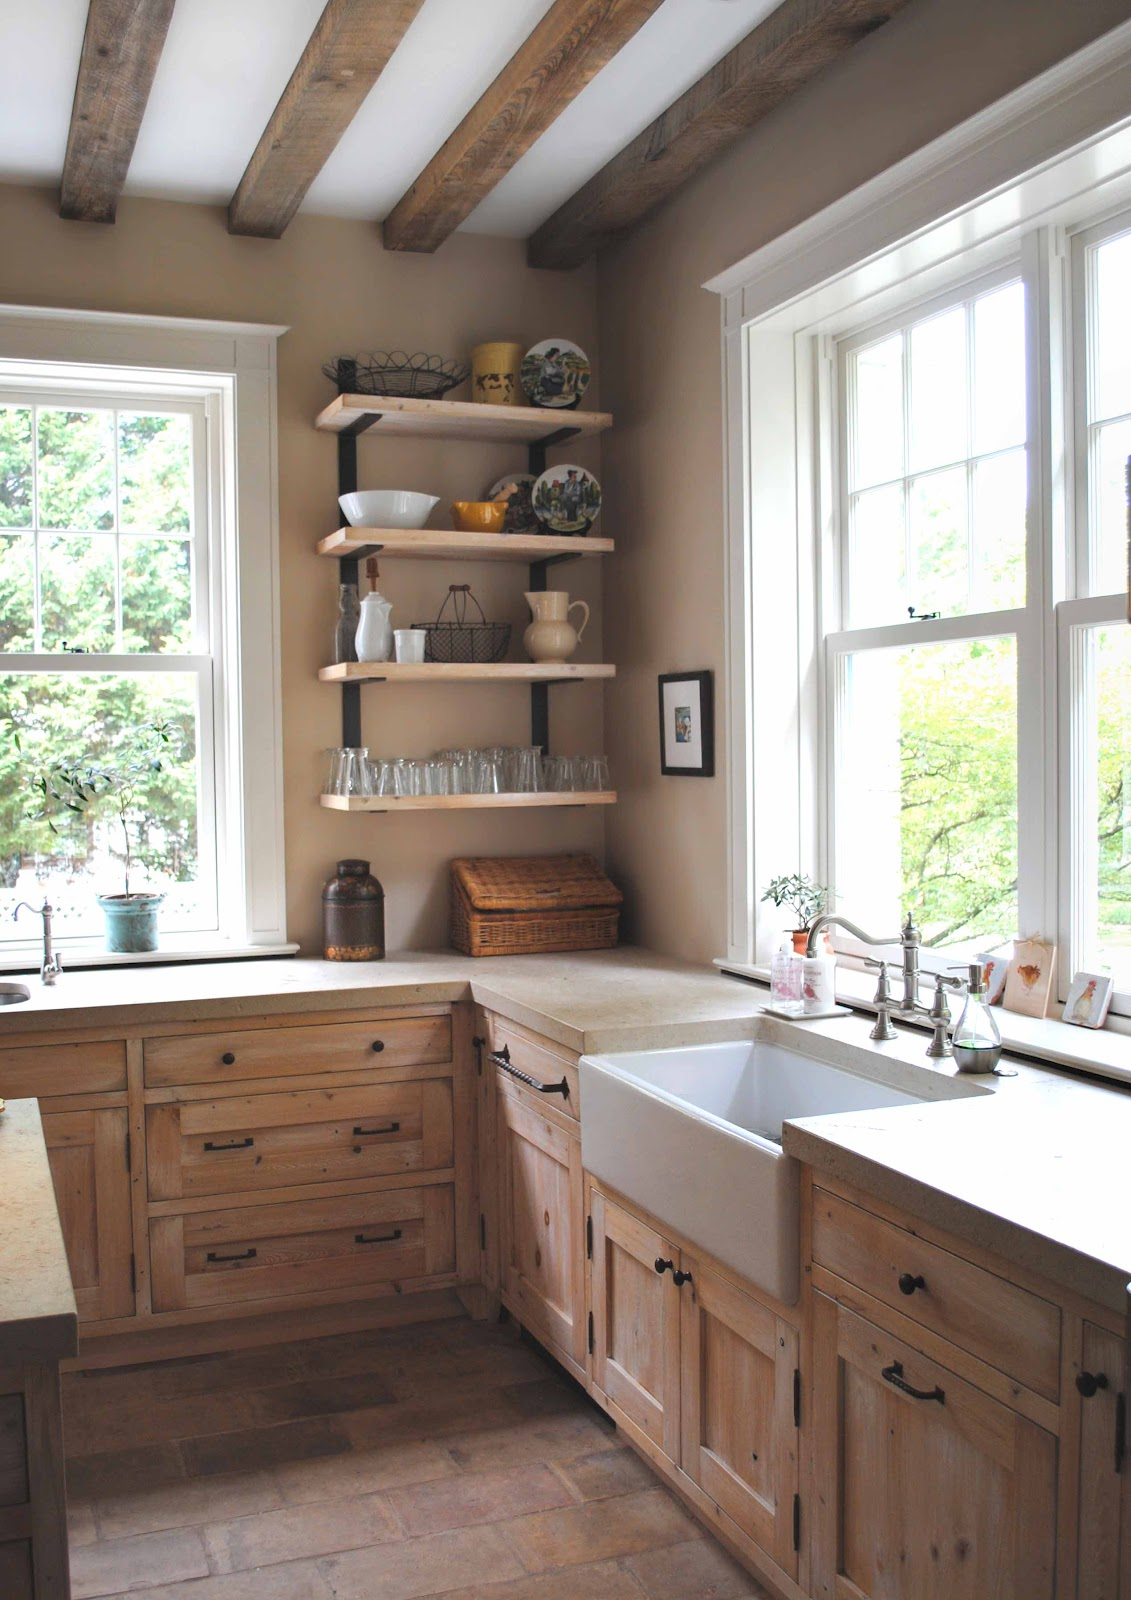 Tone on tone old and new in kitchen renovation for Farmhouse kitchen ideas